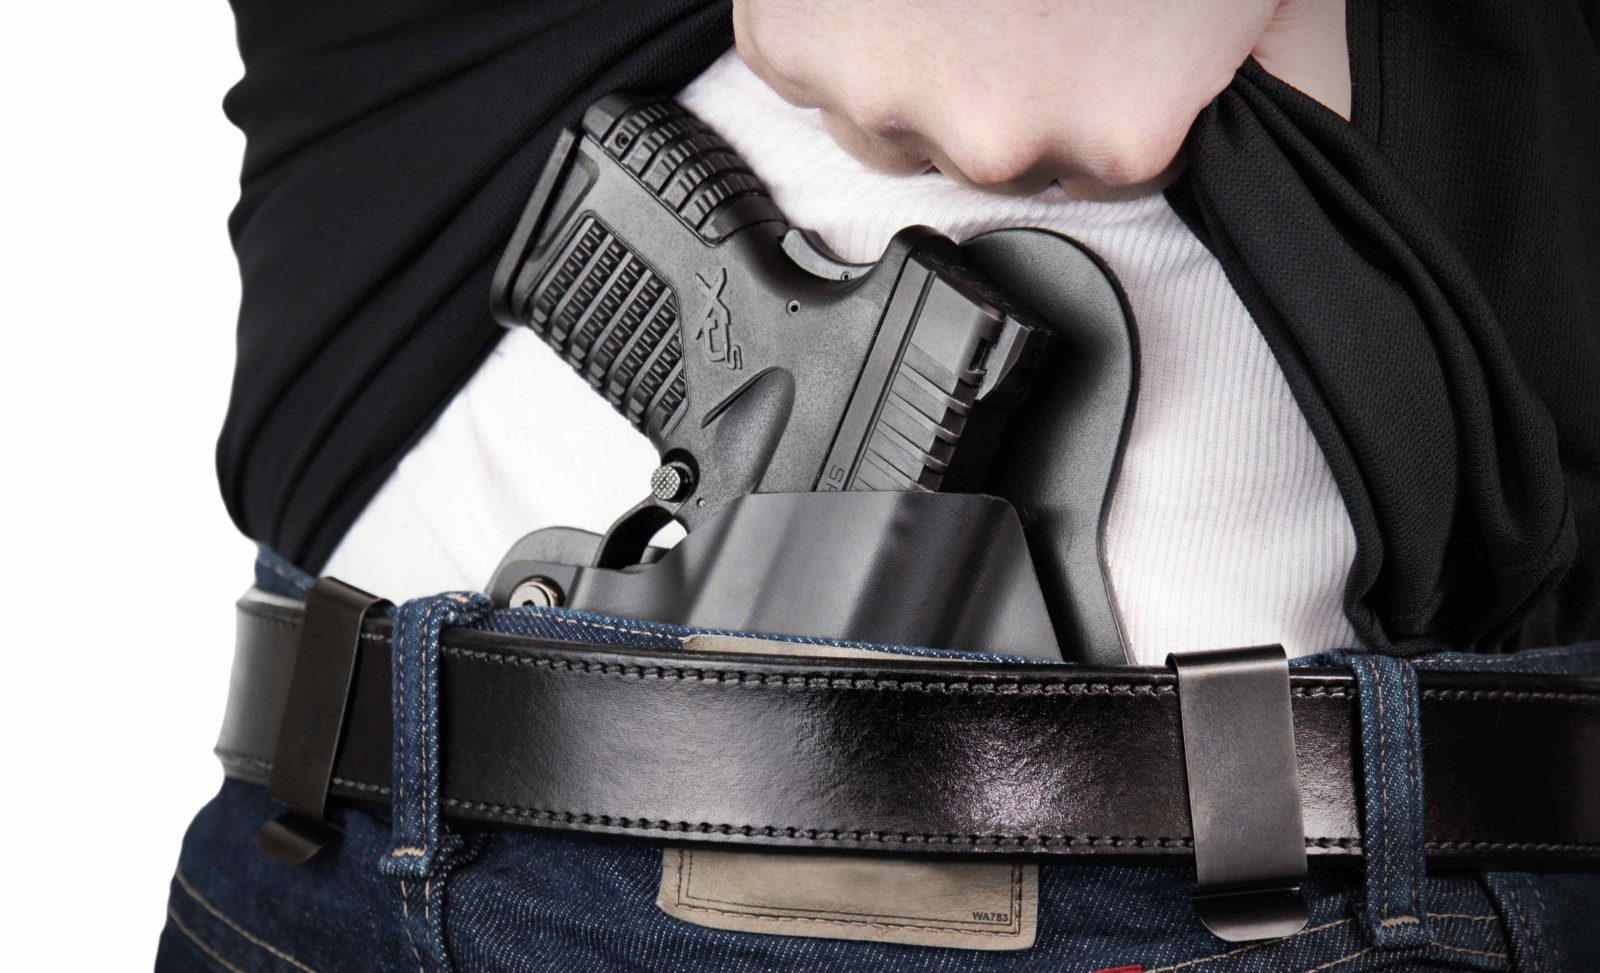 Senate Bill grants Missouri residents lifetime concealed carry permit